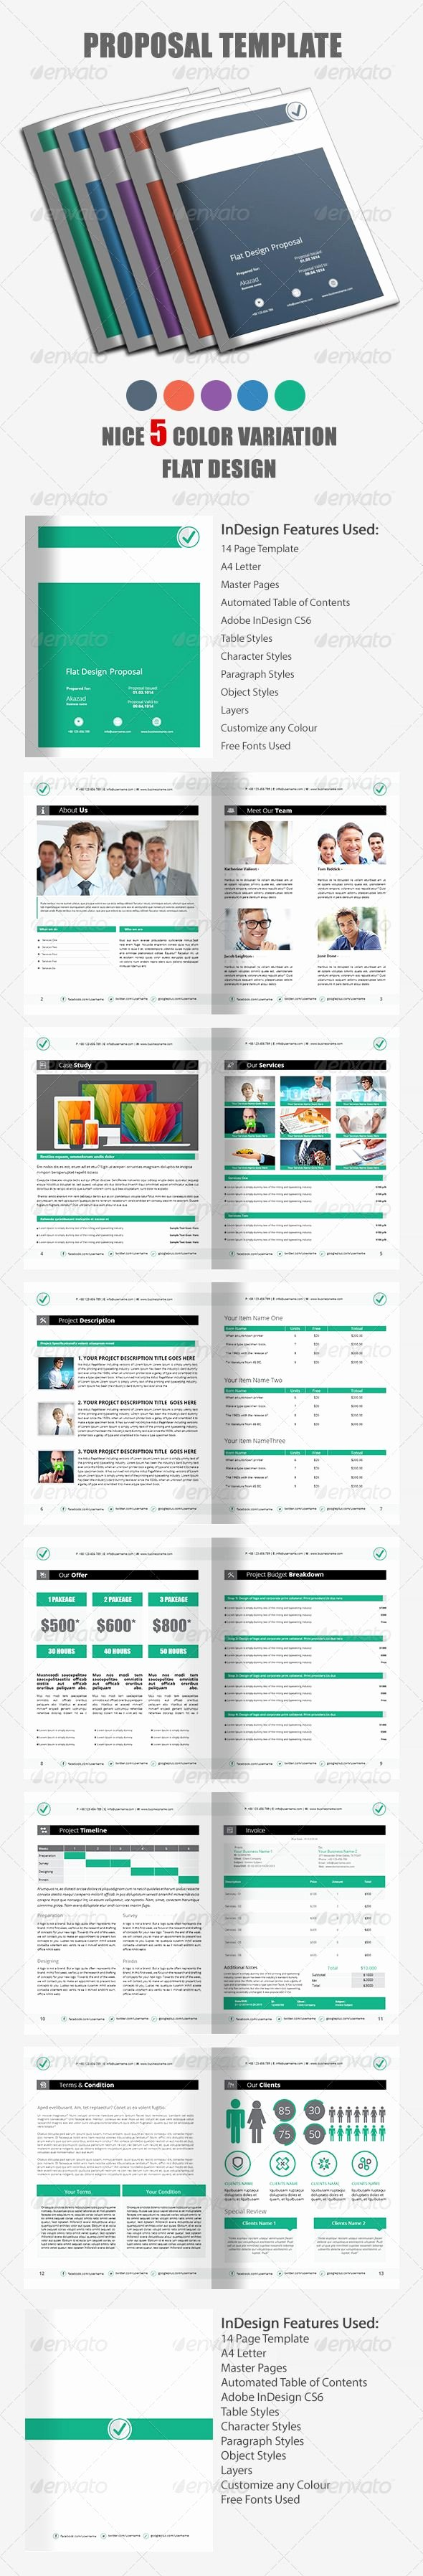 Free Proposal Template Indesign Elegant 14 Best Write A Cleaning Bid Proposal and Templates Images